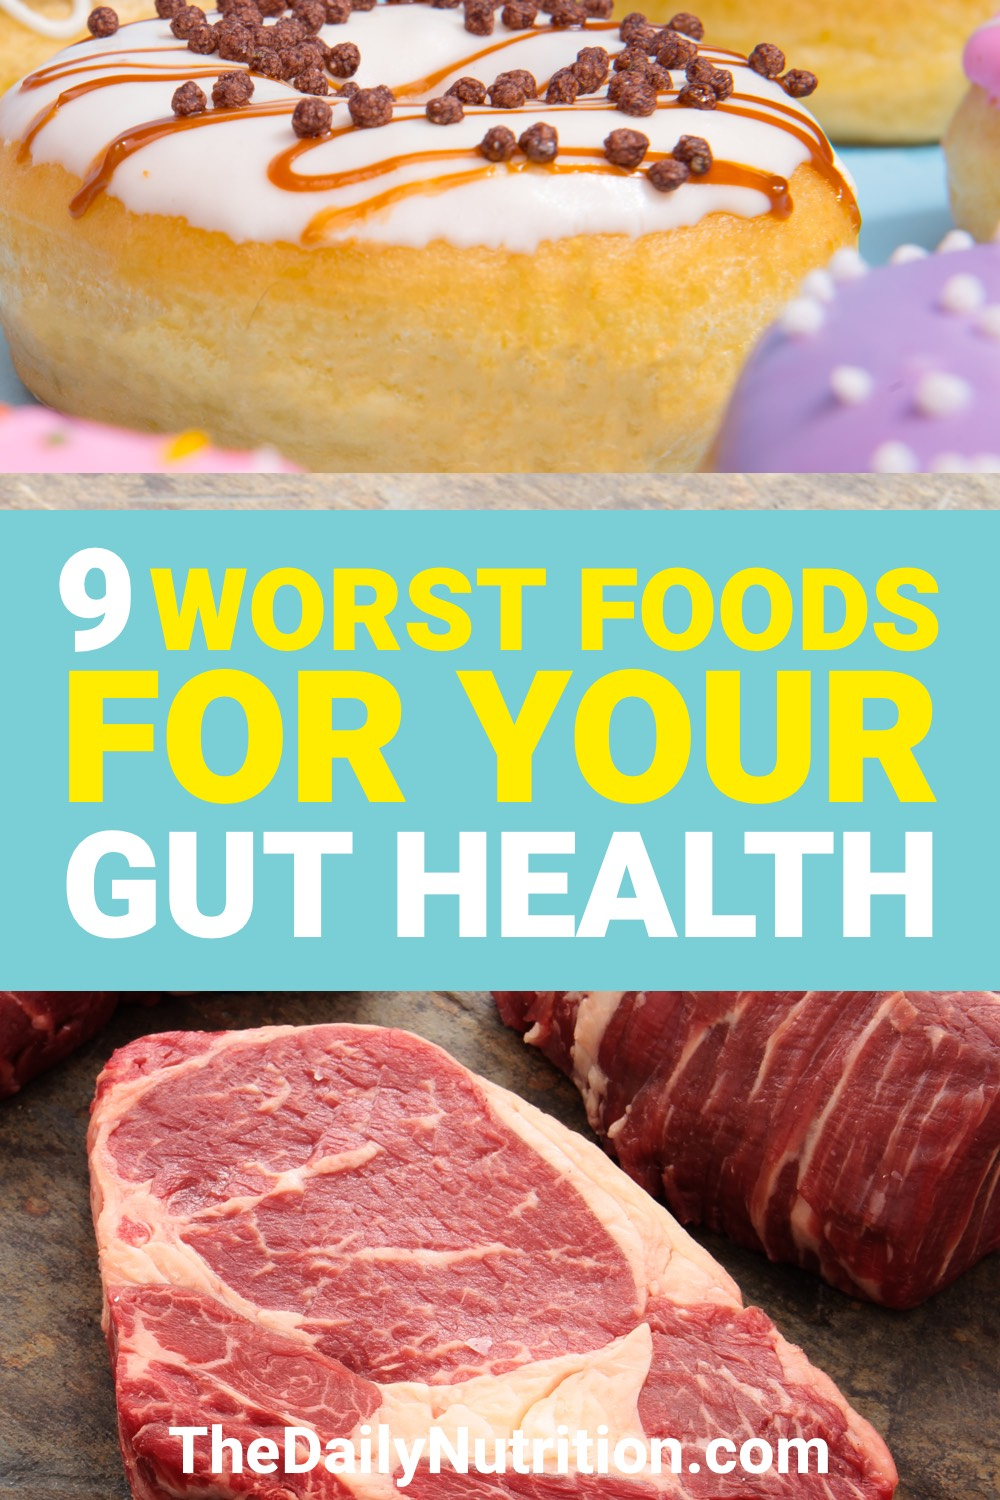 Your gut health is important. What you eat affects your gut health. Here are 9 foods to avoid for your gut health.